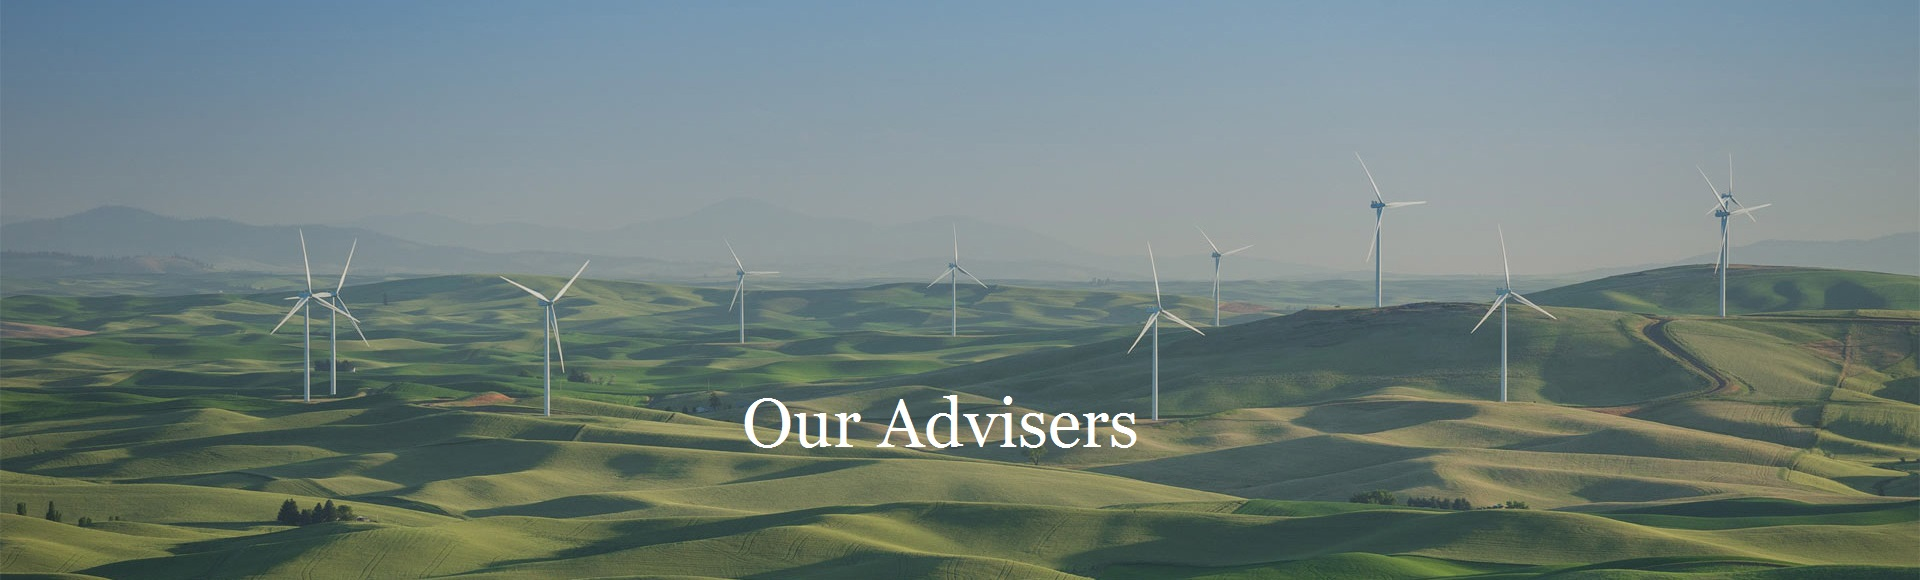 Ethical_investment_advisers